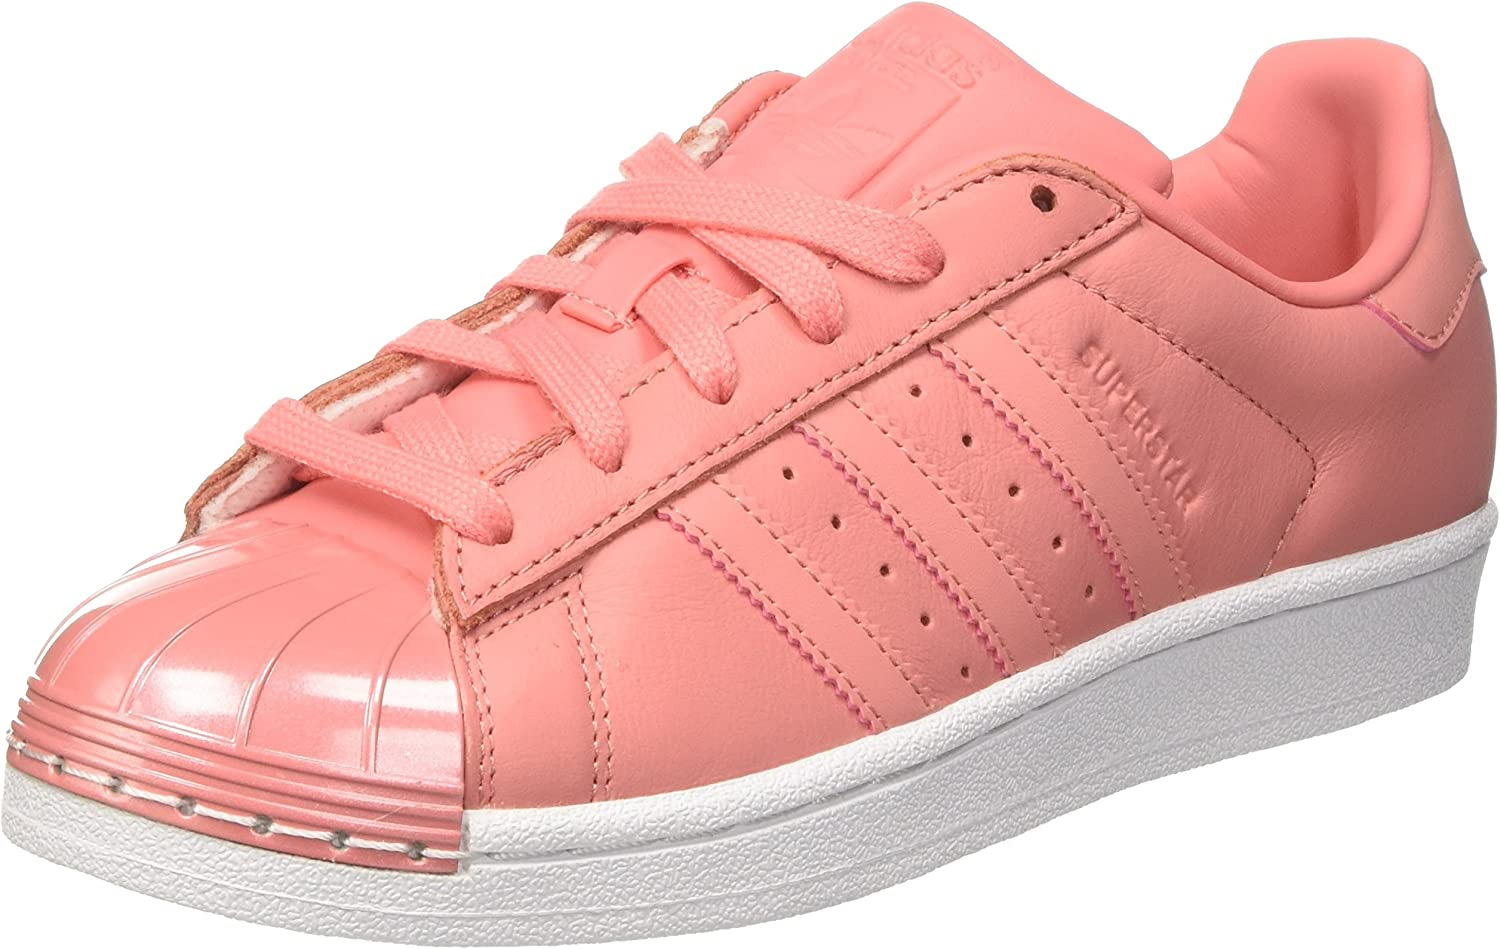 adidas Superstar Metal Toe Womens Style: ADID-BY9750-E-TACROS/TACROS Size: M2